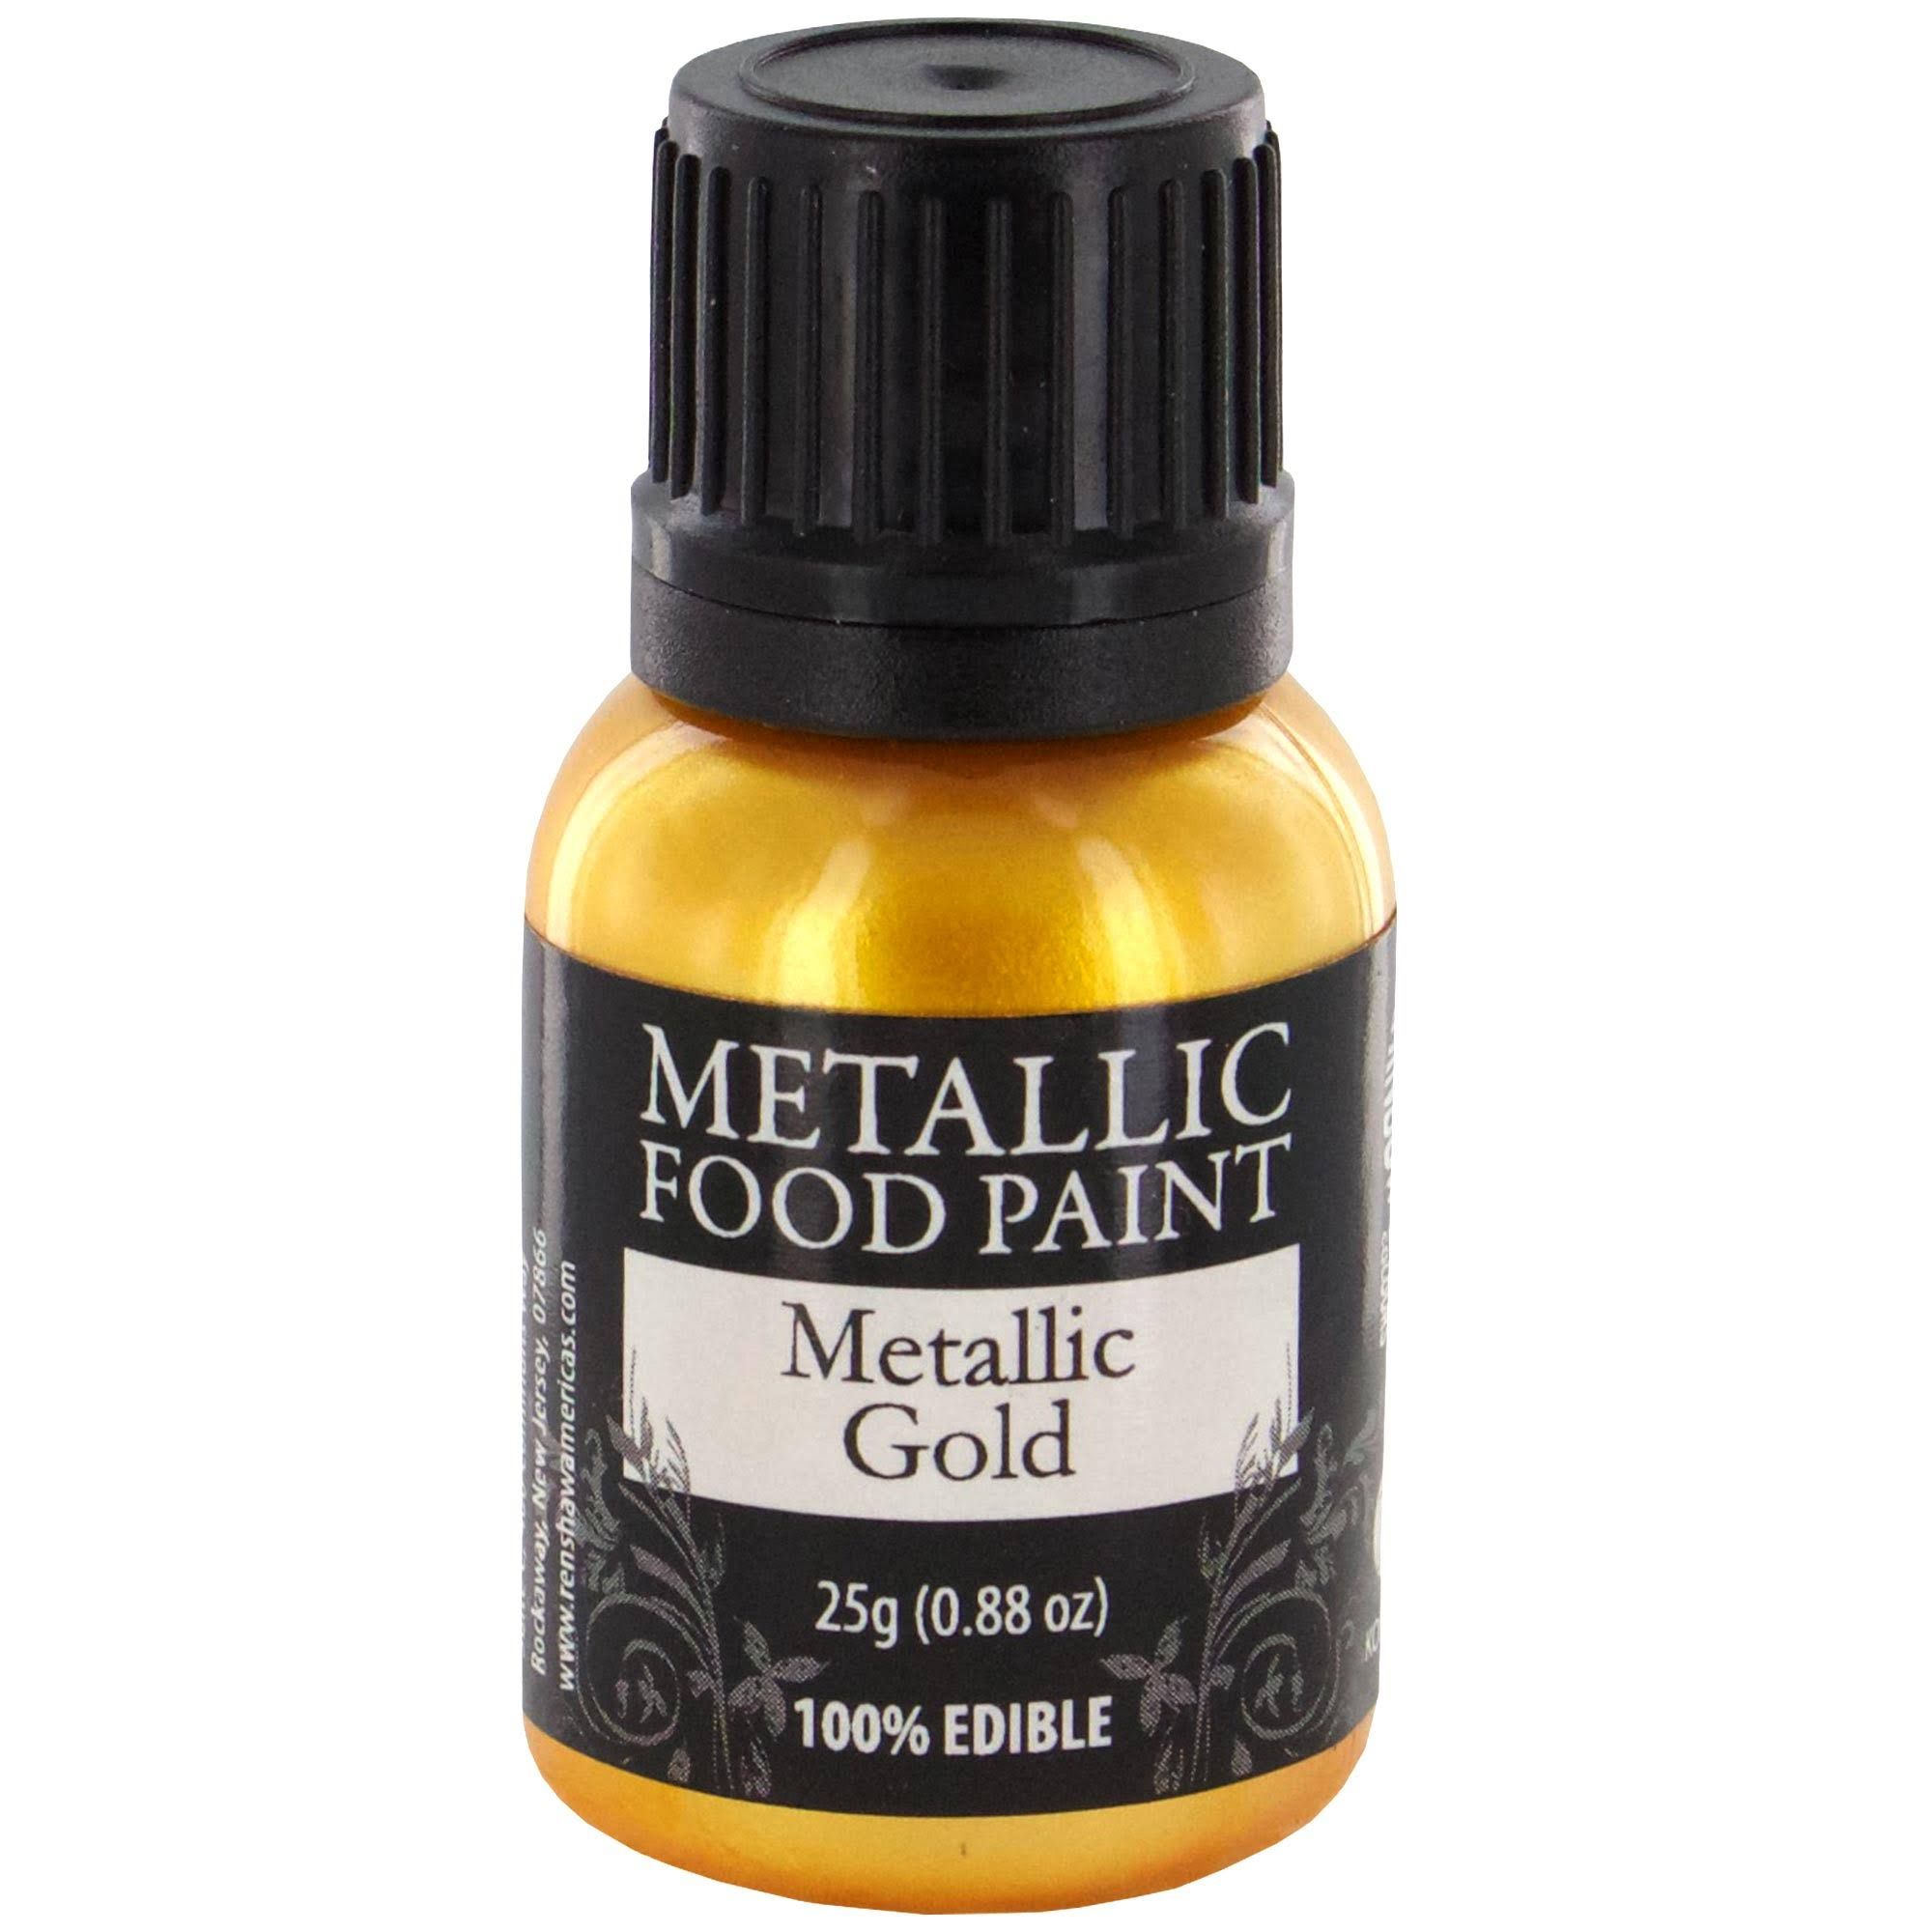 Rainbow Dust Metallic Food Paint - Metallic Light Gold, 25g